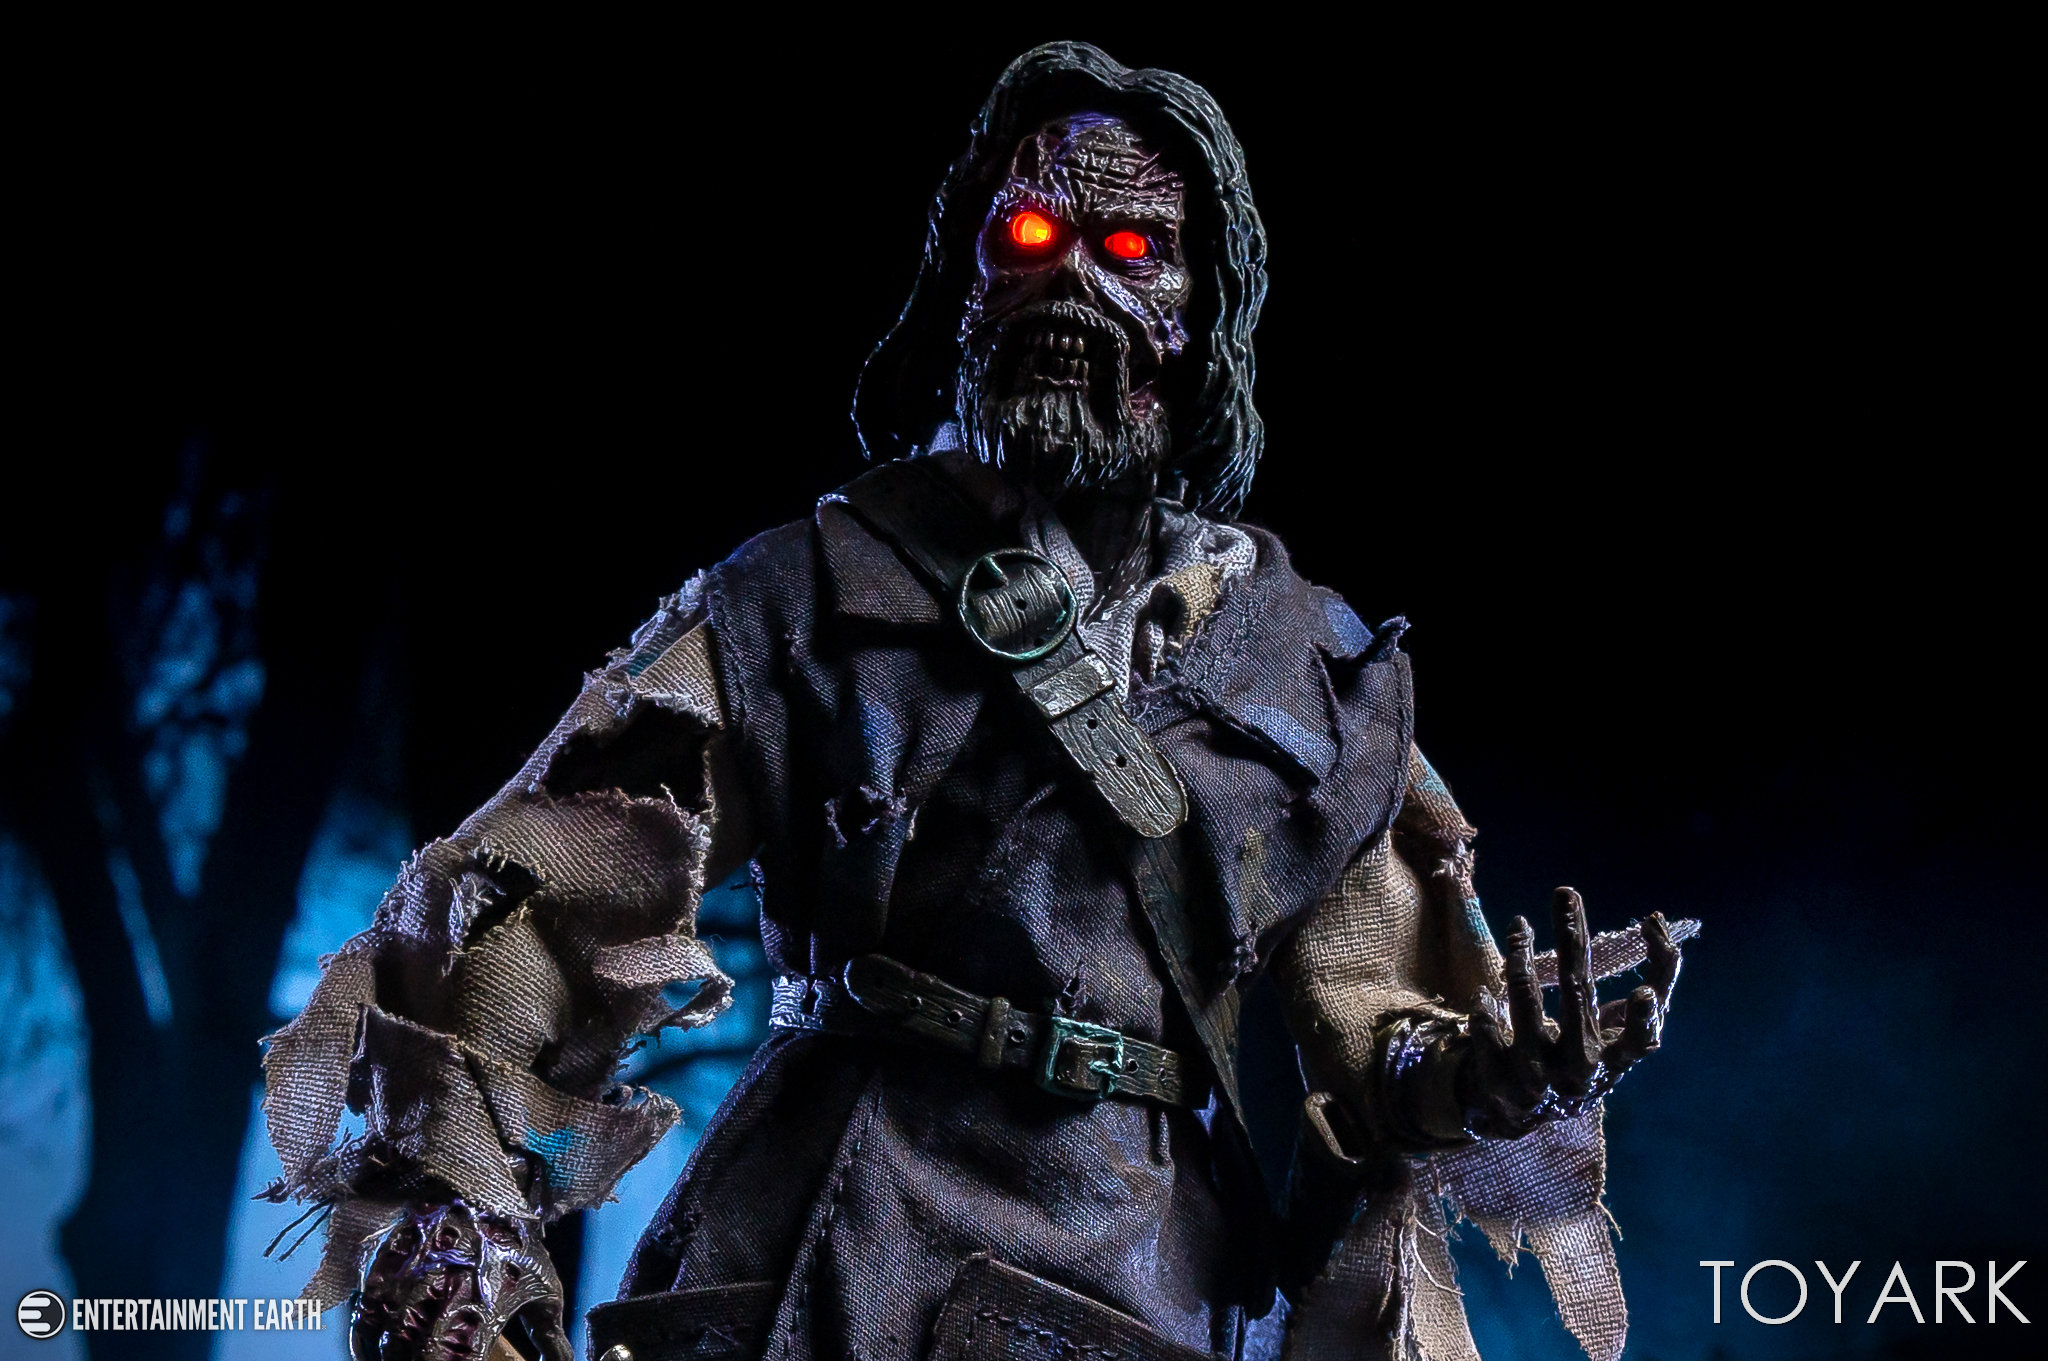 https://news.toyark.com/wp-content/uploads/sites/4/2018/11/NECA-Captain-Blake-The-Fog-020.jpg